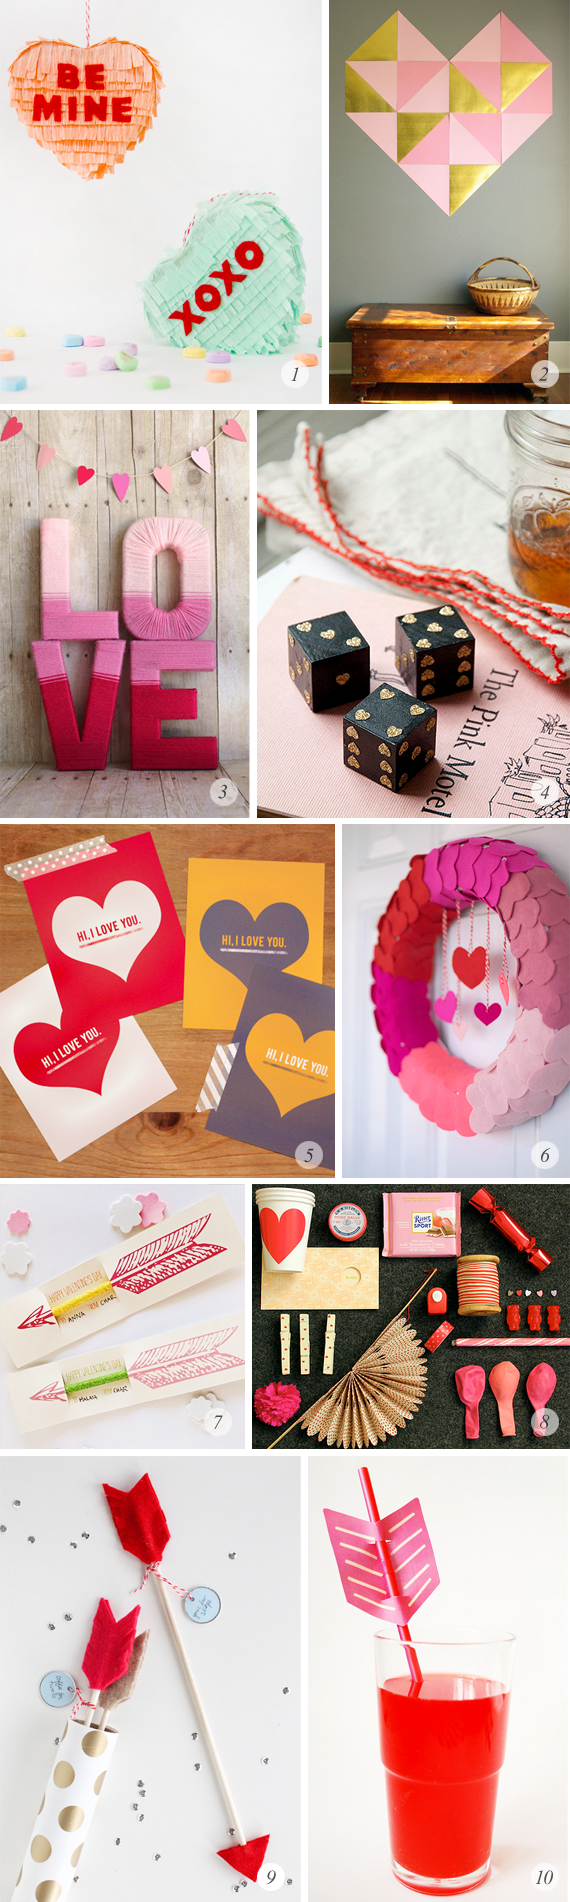 10 Great Valentine's Day DIY Projects // Bubby and Bean